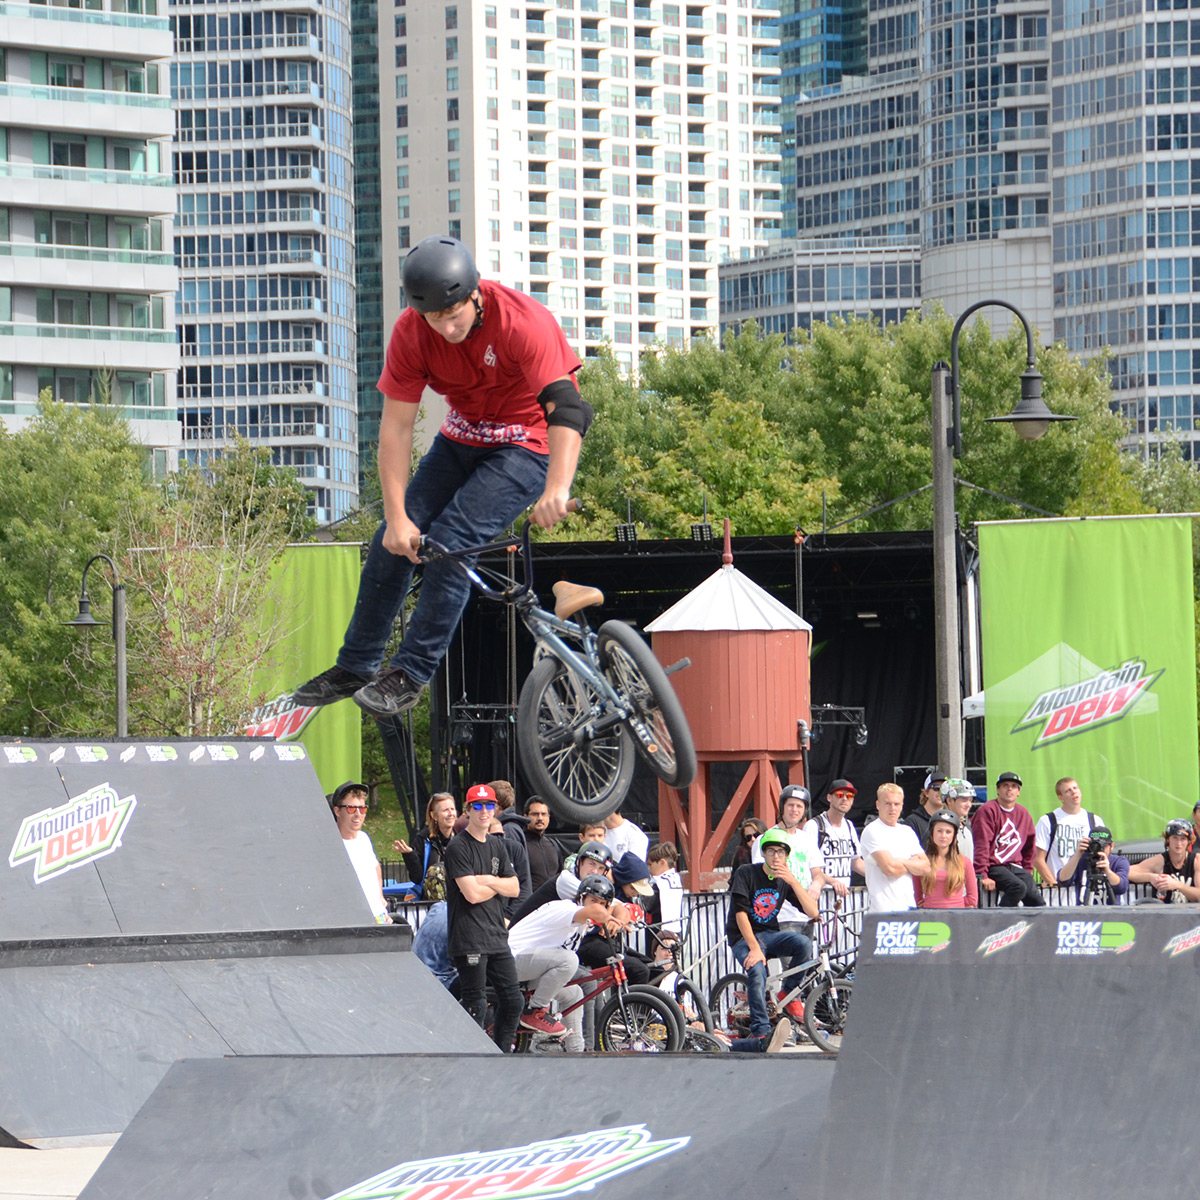 Whip at Dew Tour Am Series in Toronto